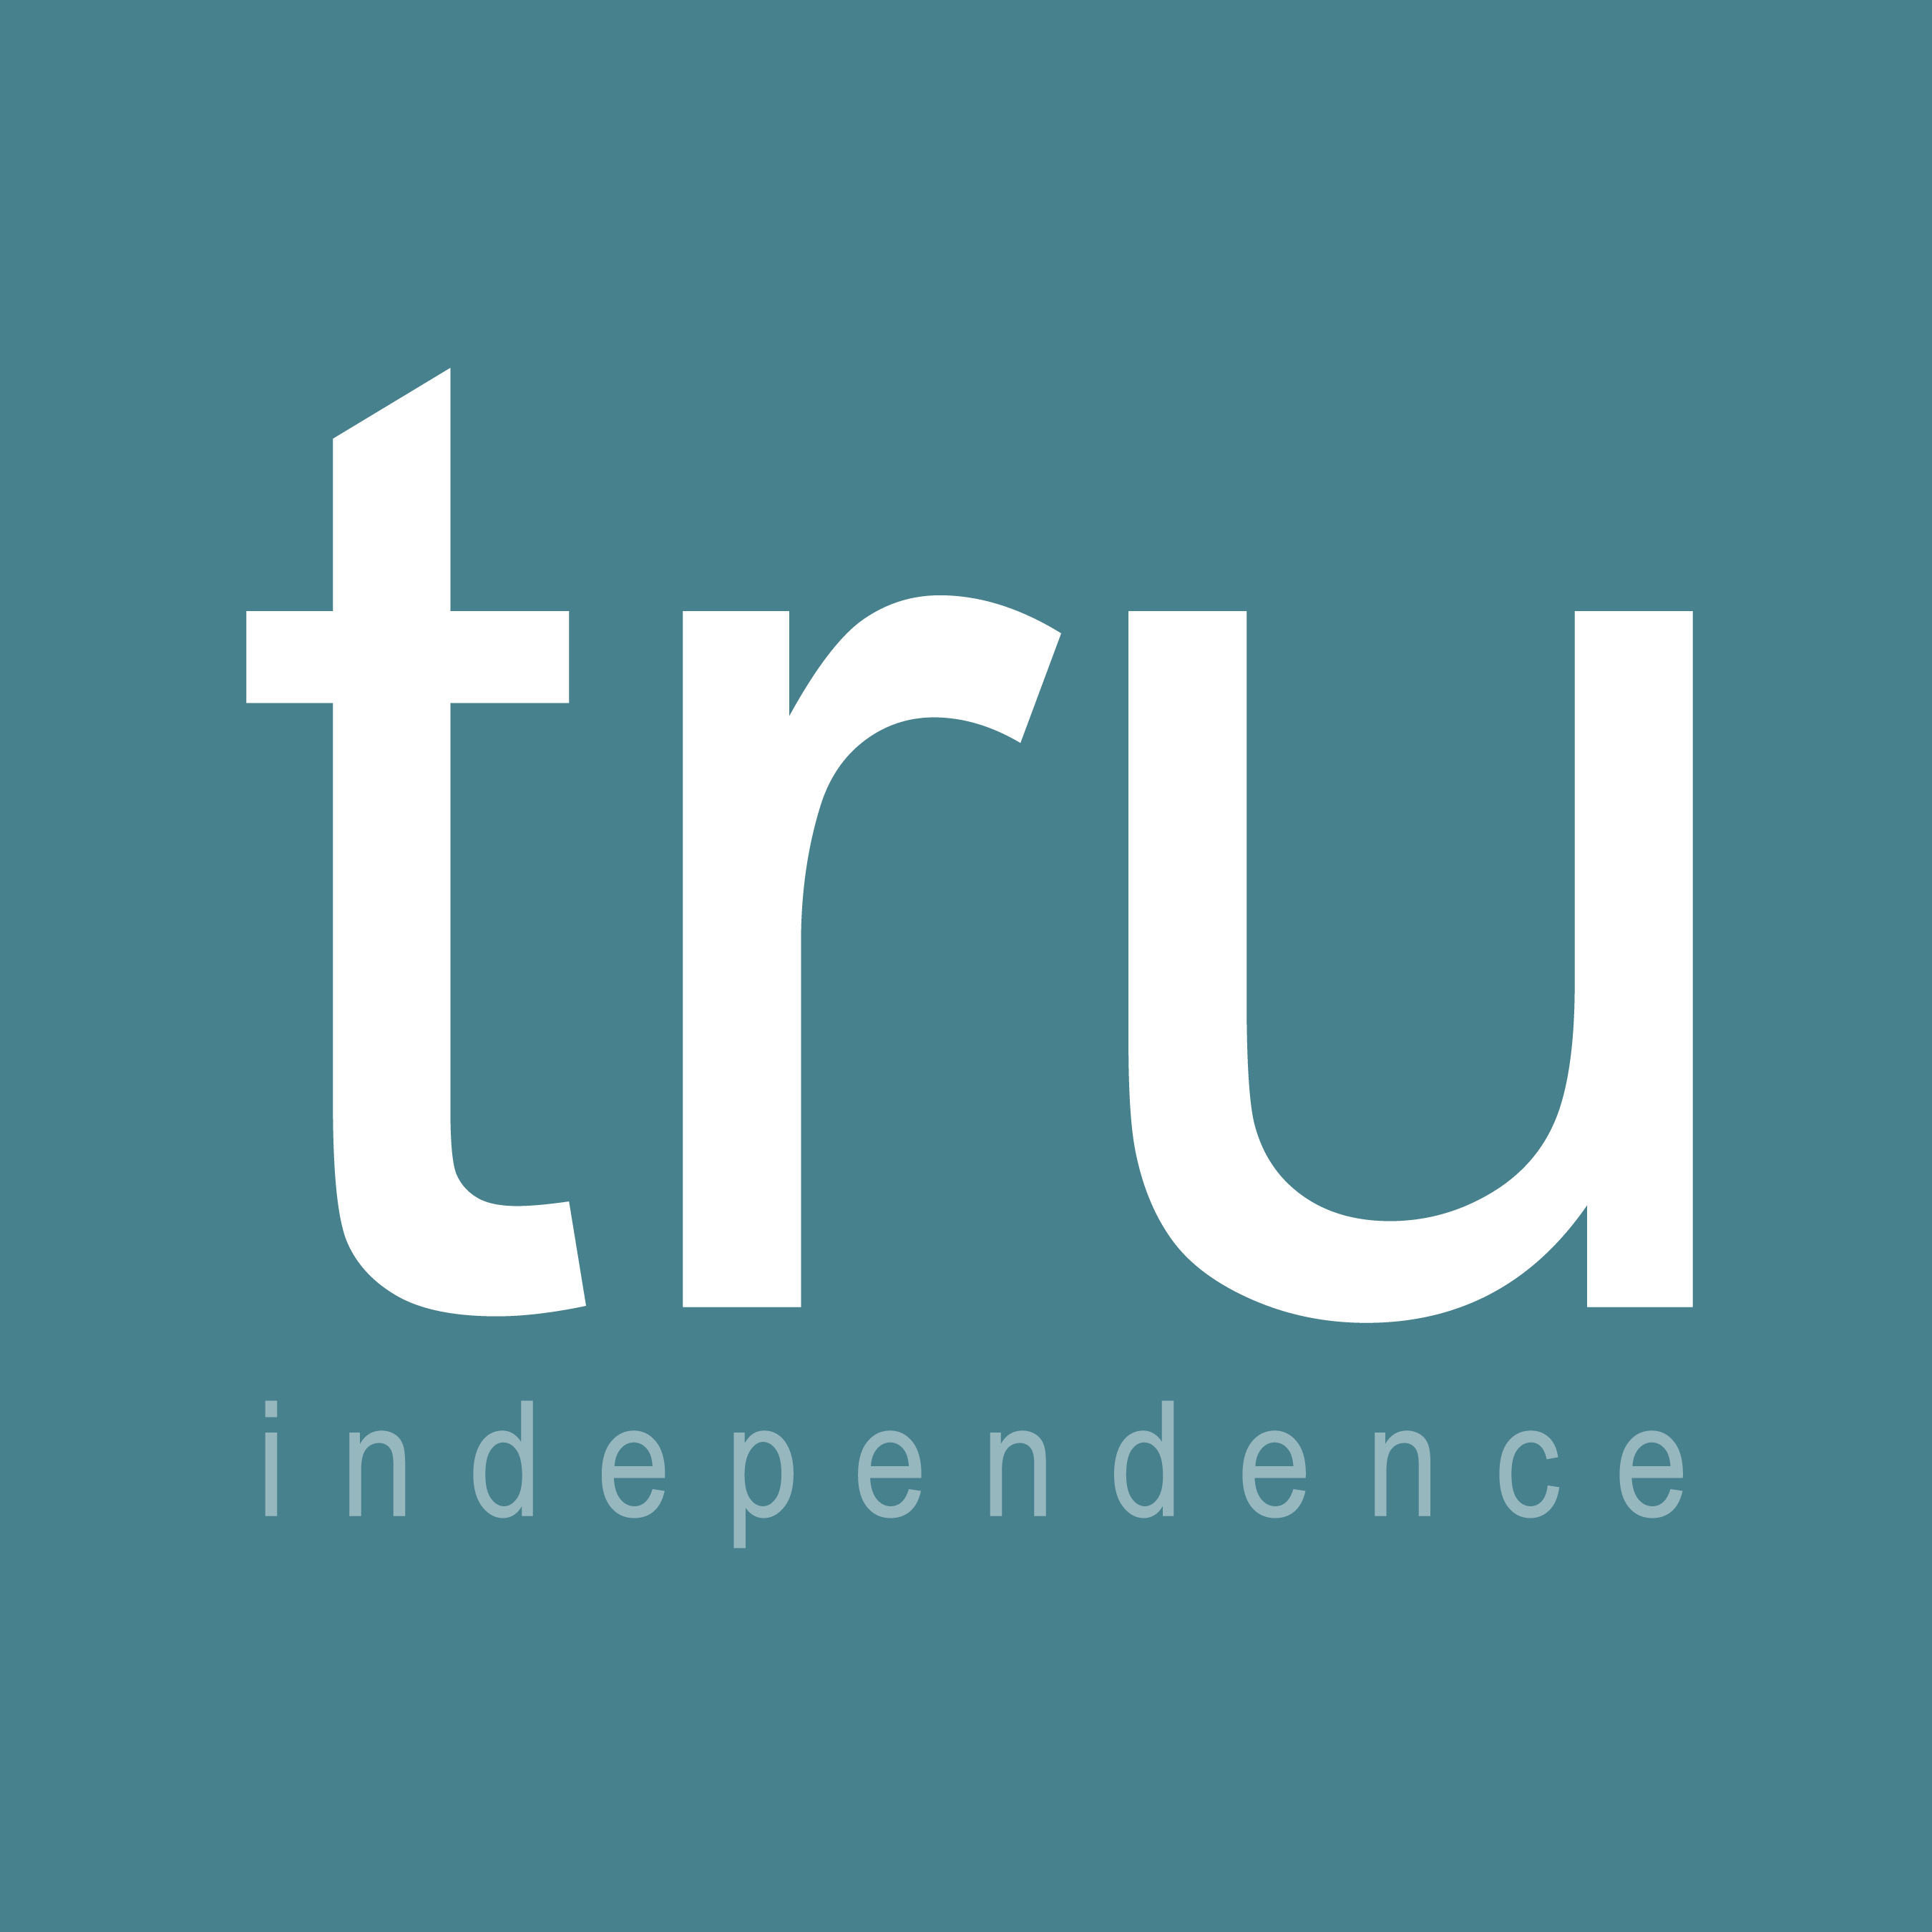 tru Independence Partners With TruClarity To Offer Operational Support for Independent Advisor Incubator